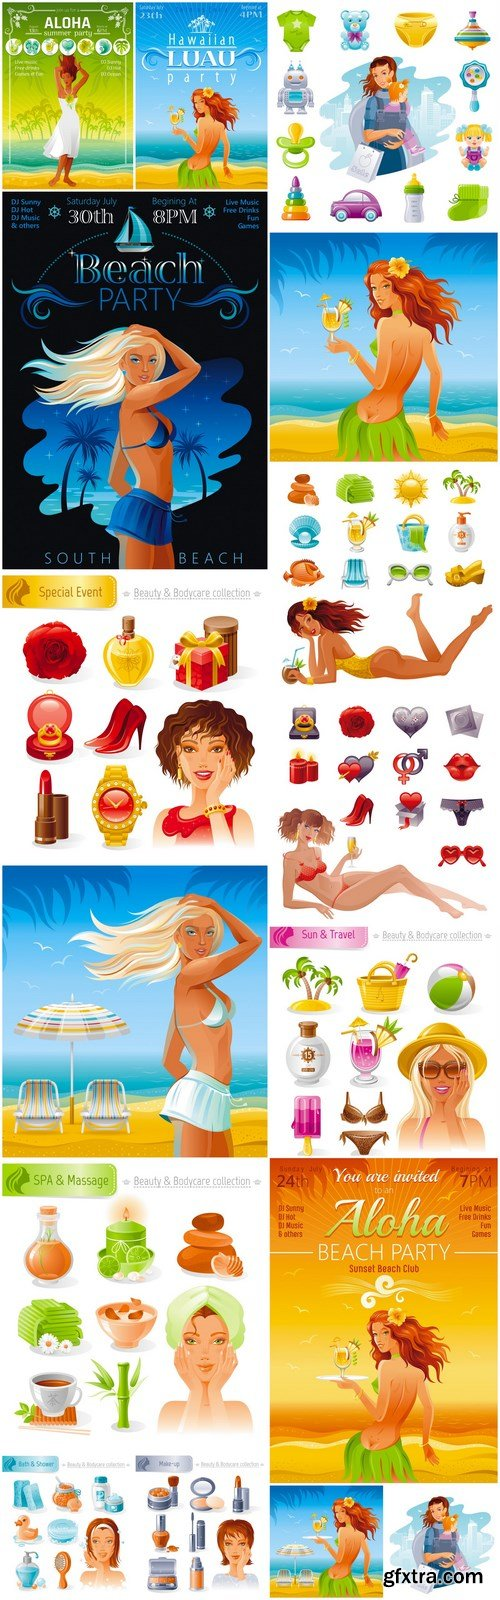 Beautiful Girls And Body Care - 16 Vector